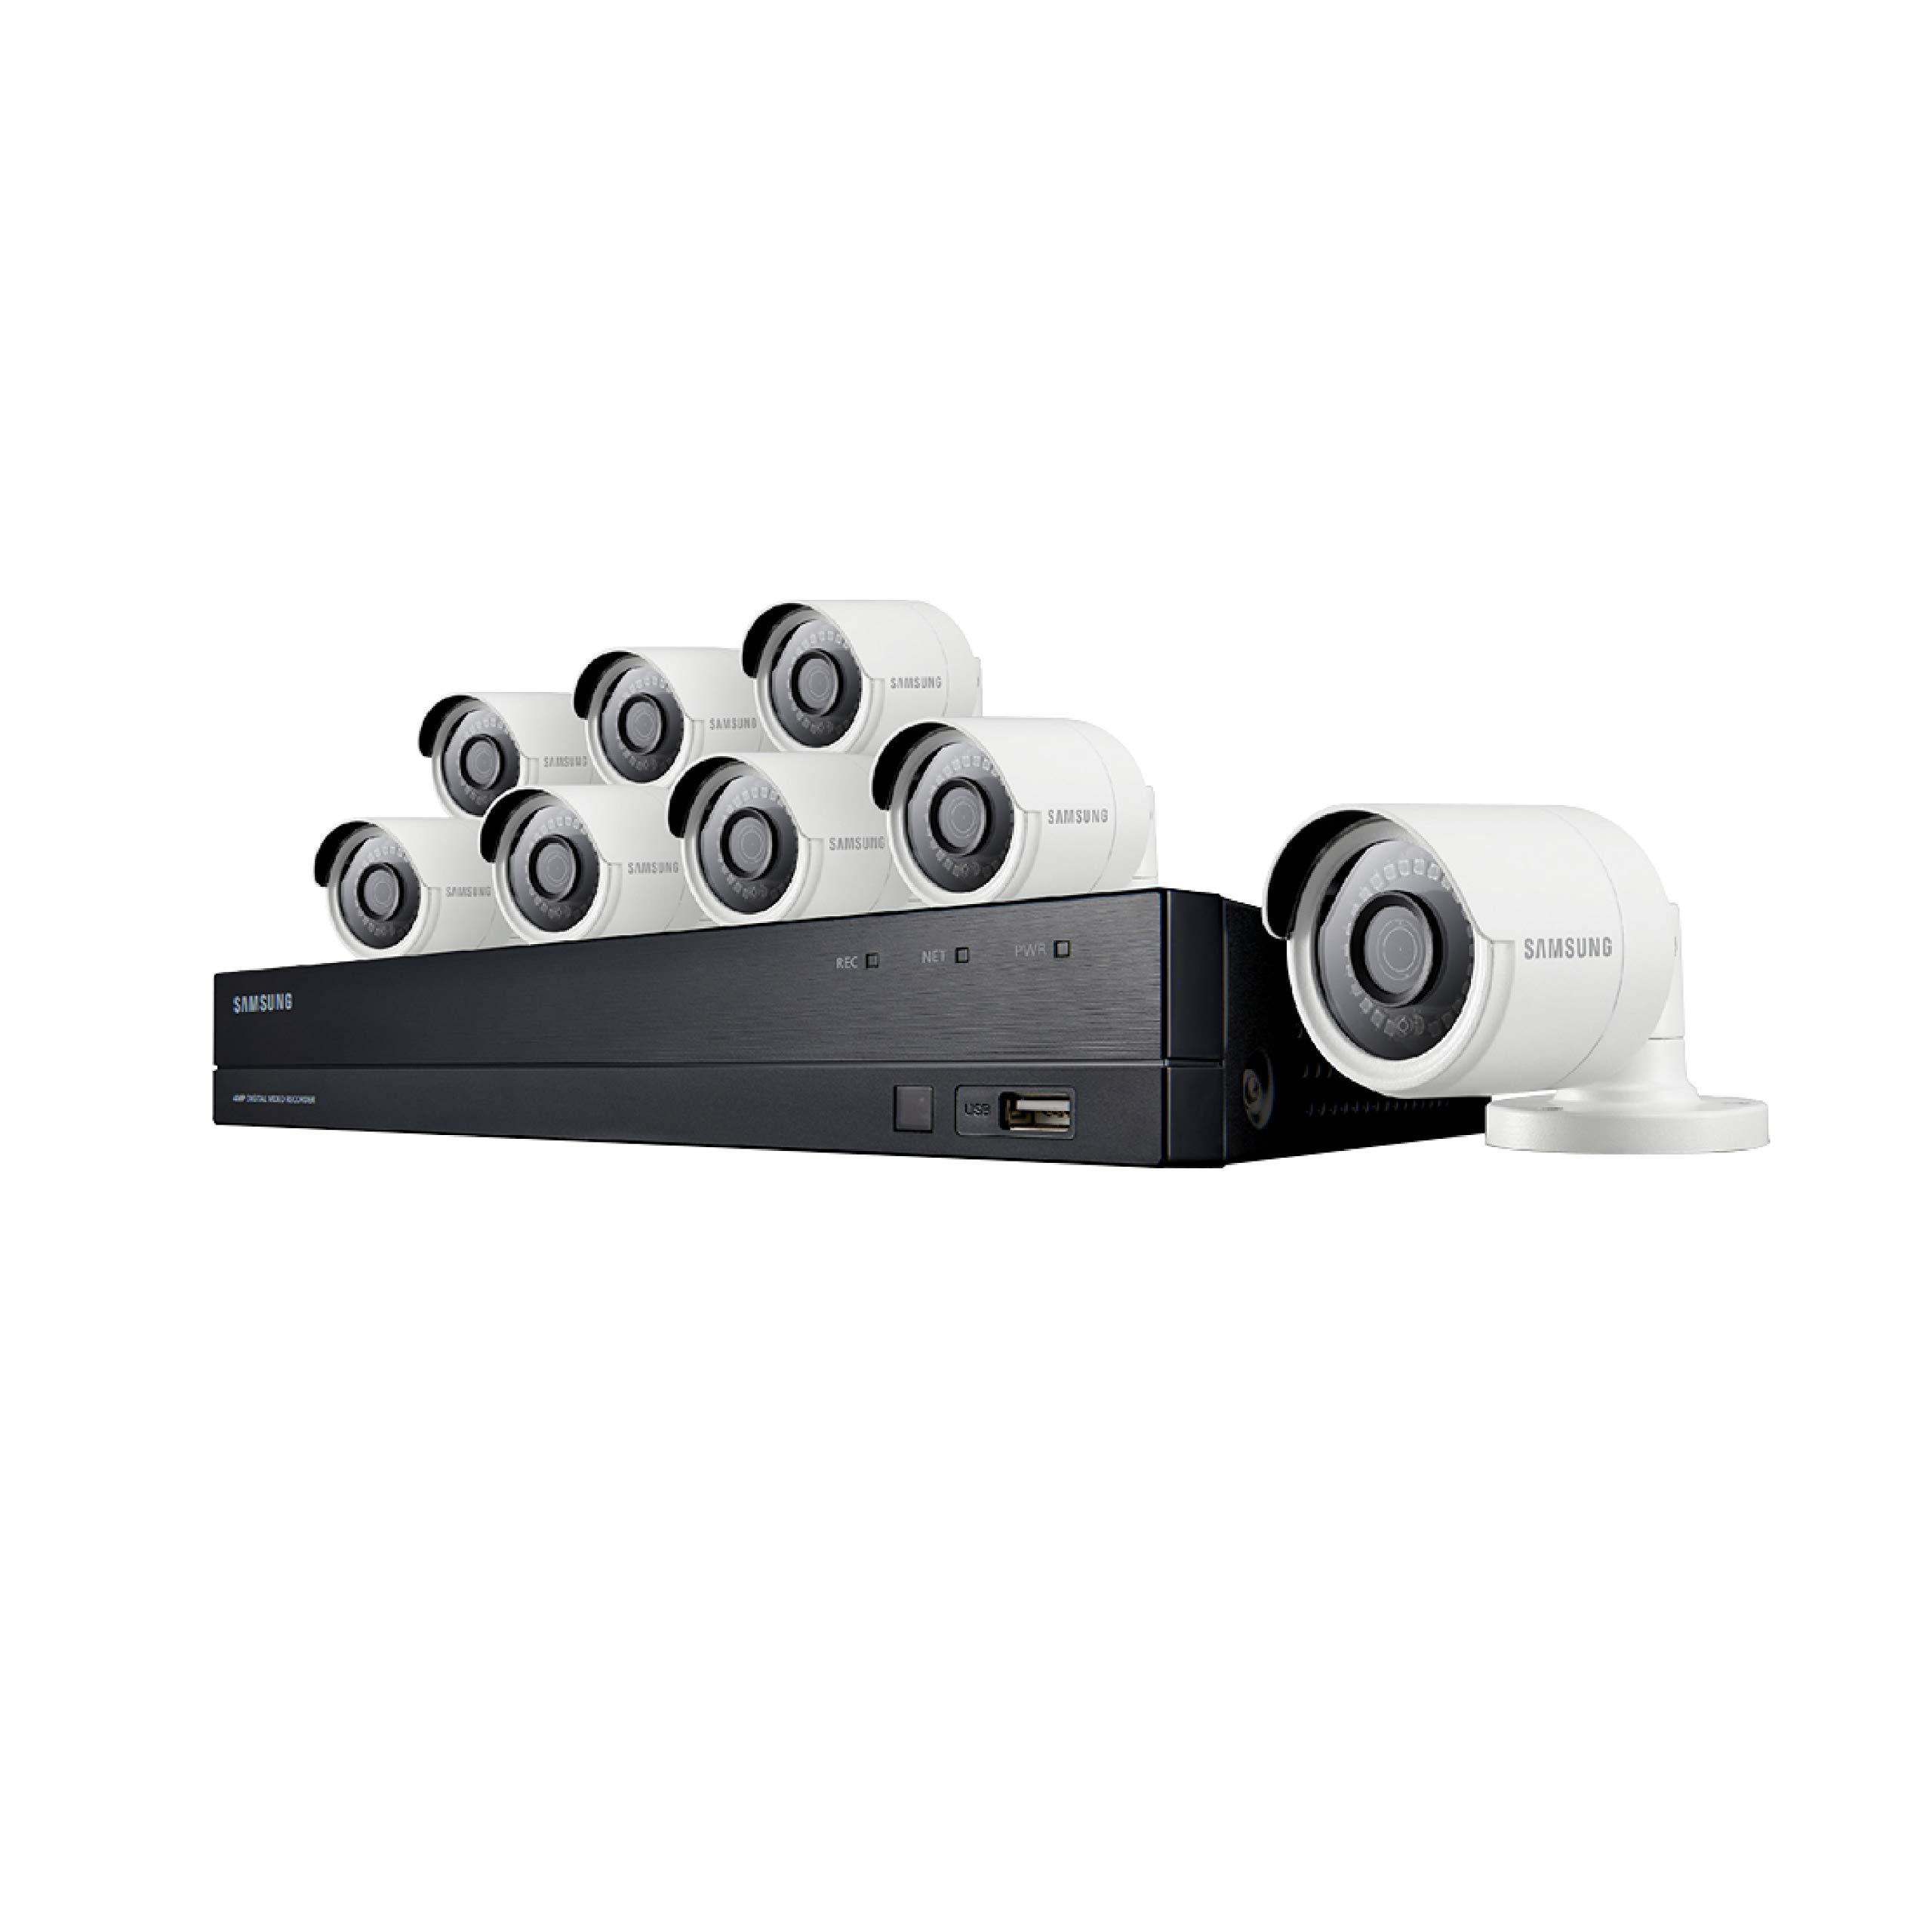 SDH-C84080BF - Samsung Wisenet All-in-One 8 Channel 4 MP Security System with 2TB Hard Drive, 8 Super HD Bullet Cameras, and 82' Night Vision by Samsung